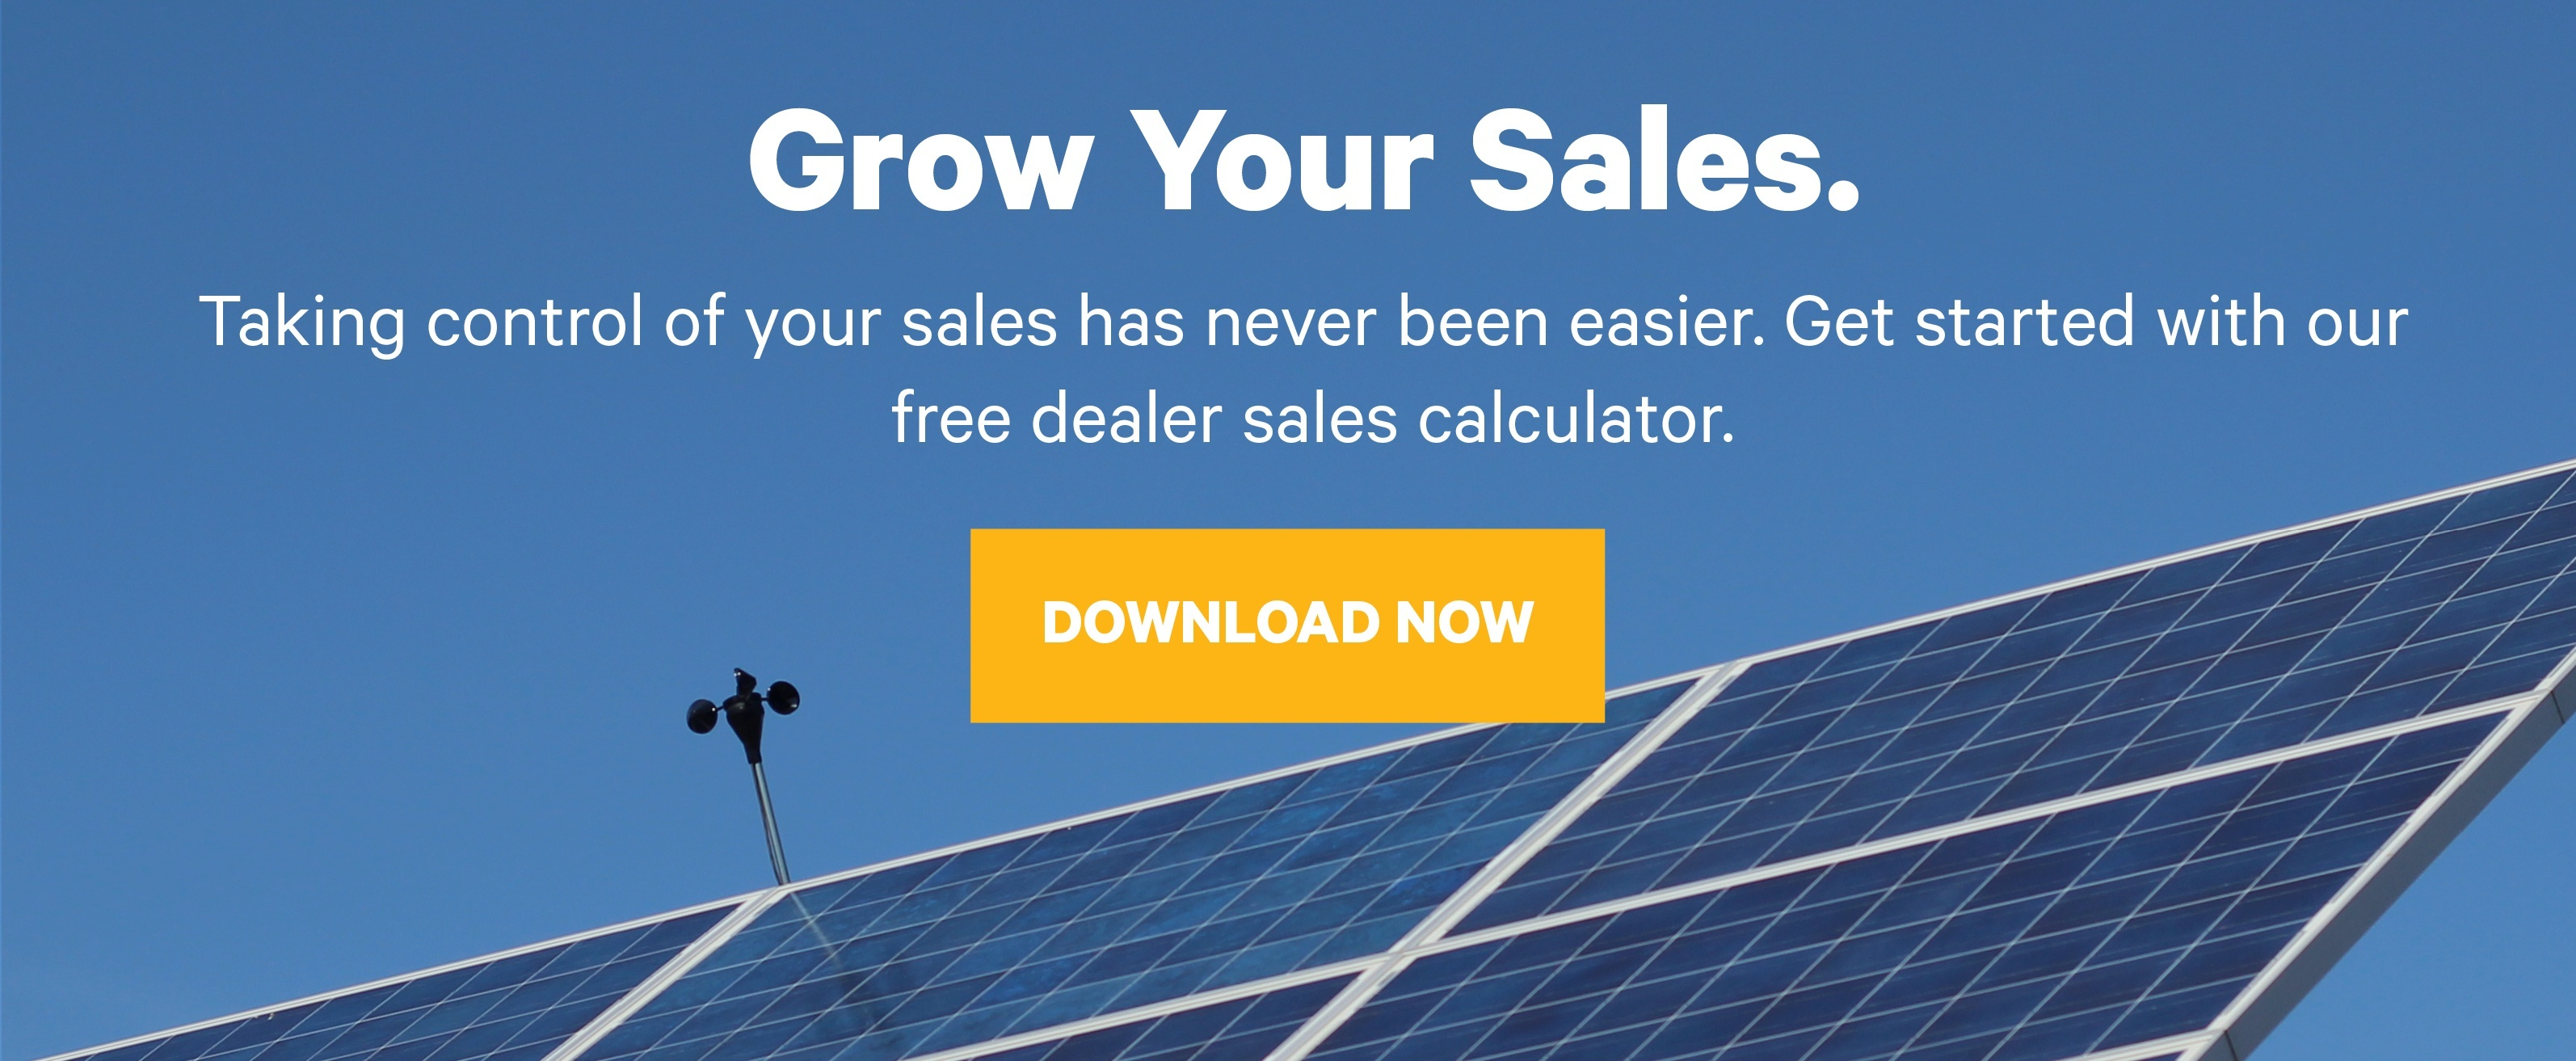 Grow your sales. Taking control of your sales has never been easier. Get started with our  free dealer sales calculator. Download Now.